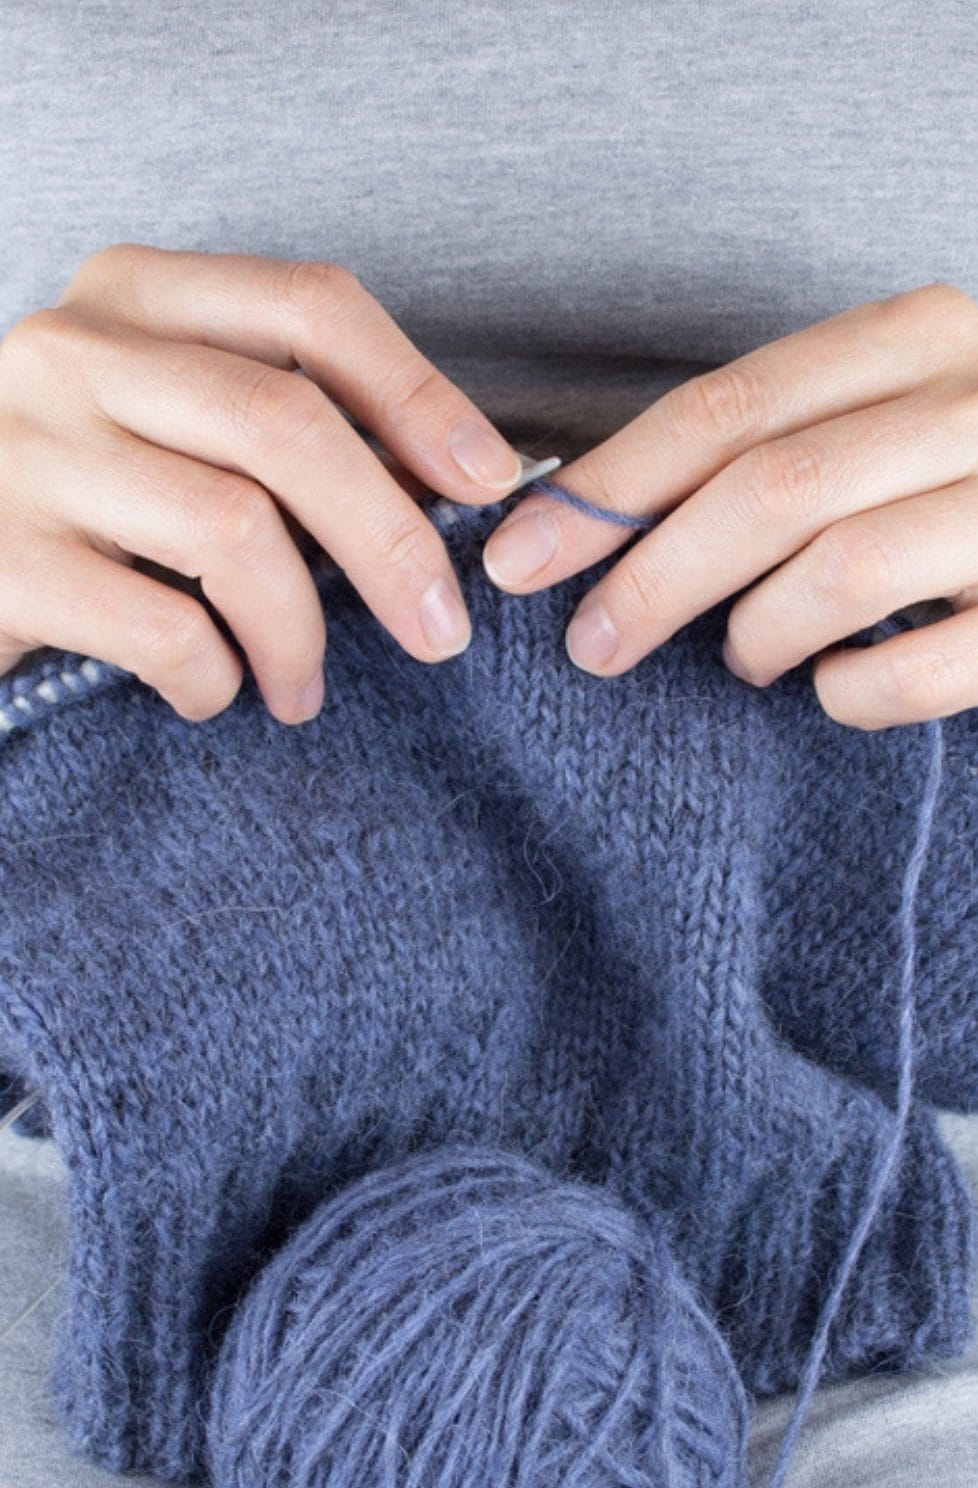 How To Knit In The Round | Handy Little Me Knittingintheround - Knitting Tutorial